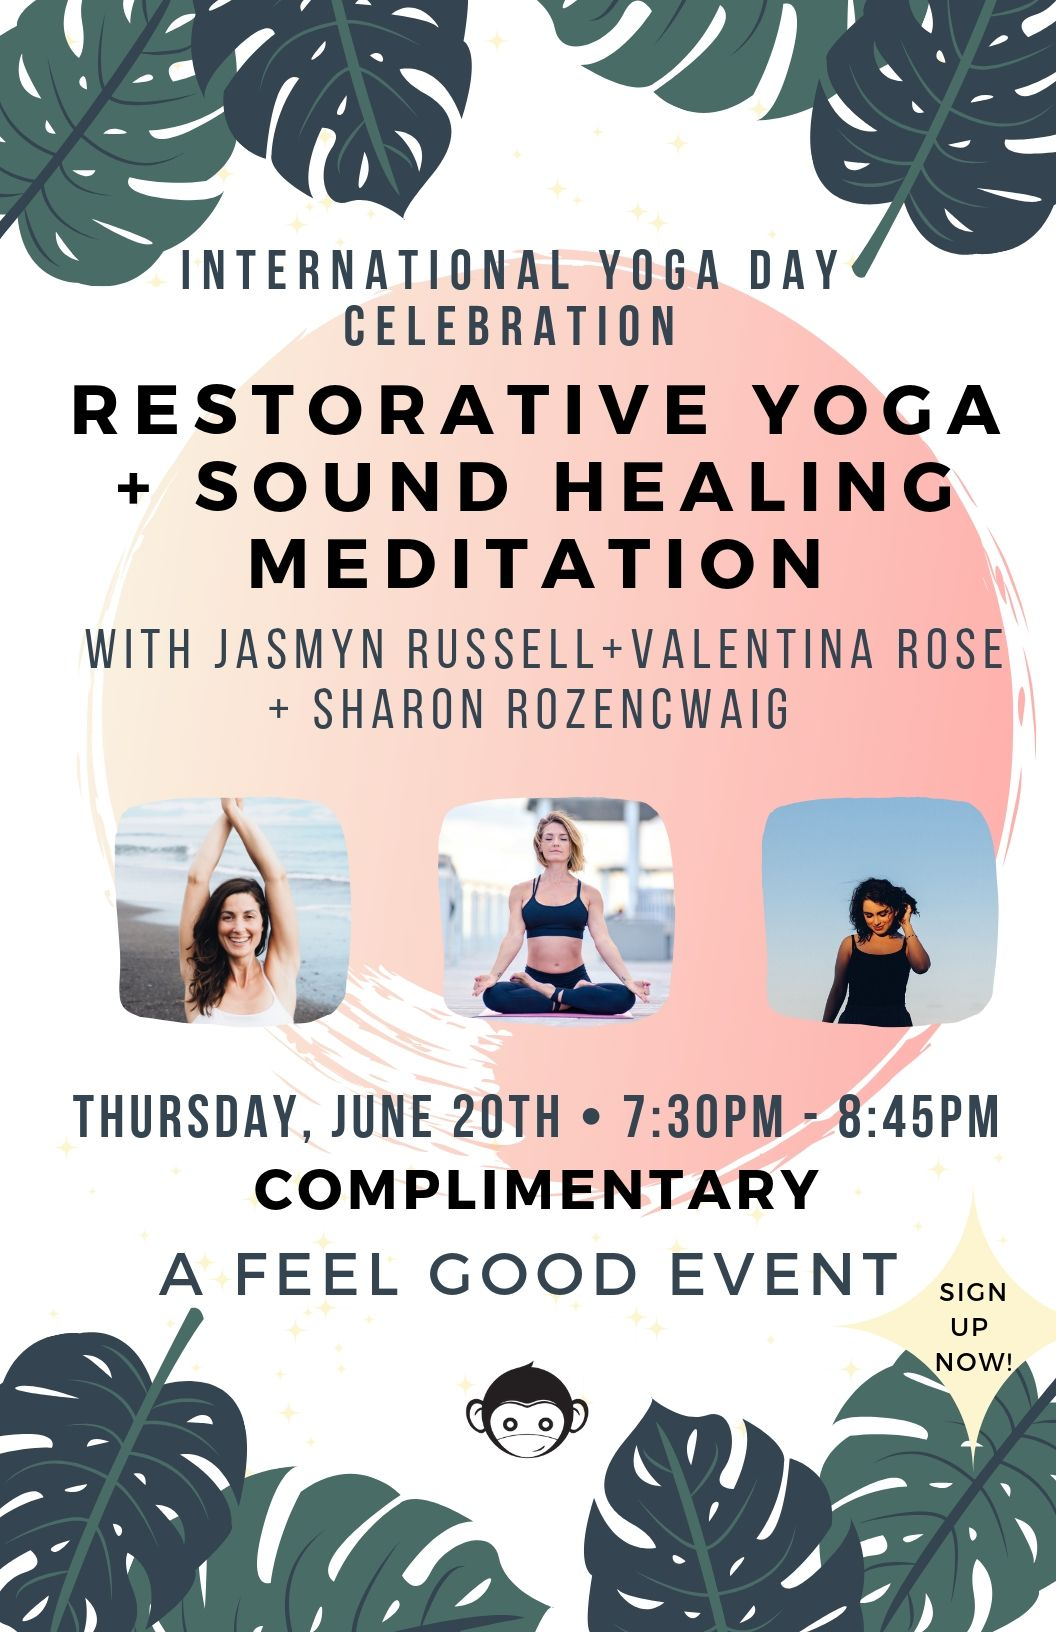 INTERNATIONAL YOGA DAY CELEBRATION GREEN MONKEY VALENTINA ROSE PRATO YOGA Miami Beach